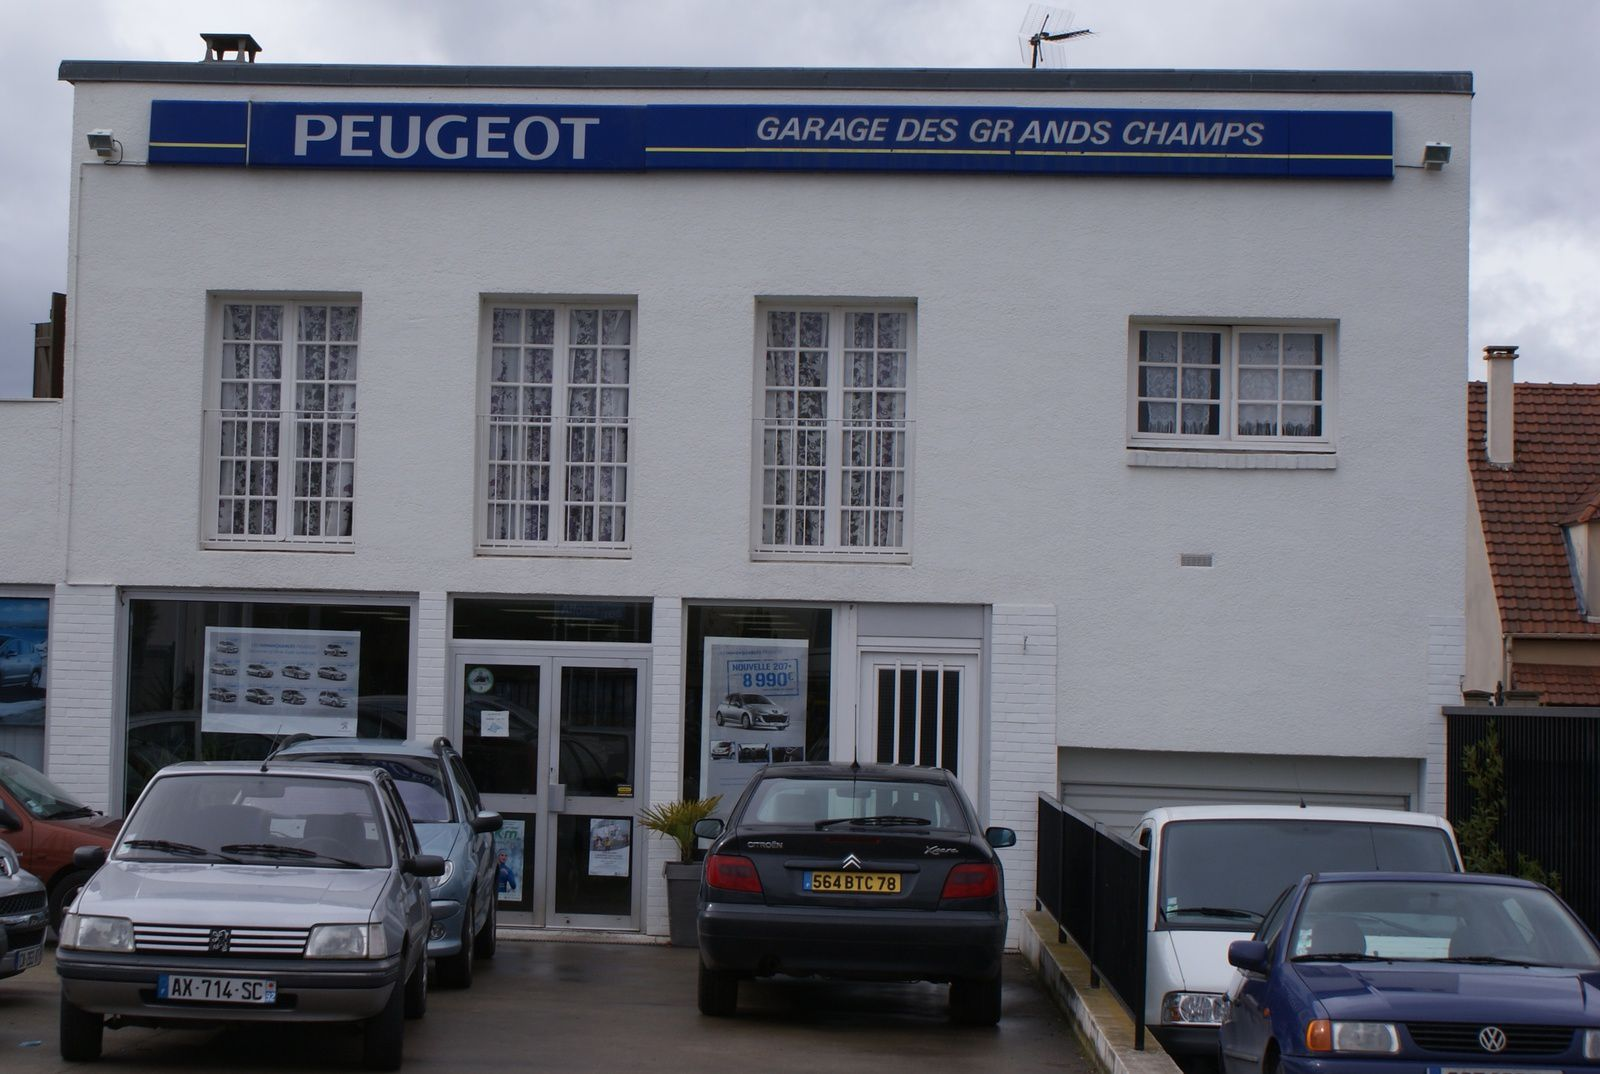 garage des grands champs peugeot carri res sous poissy. Black Bedroom Furniture Sets. Home Design Ideas